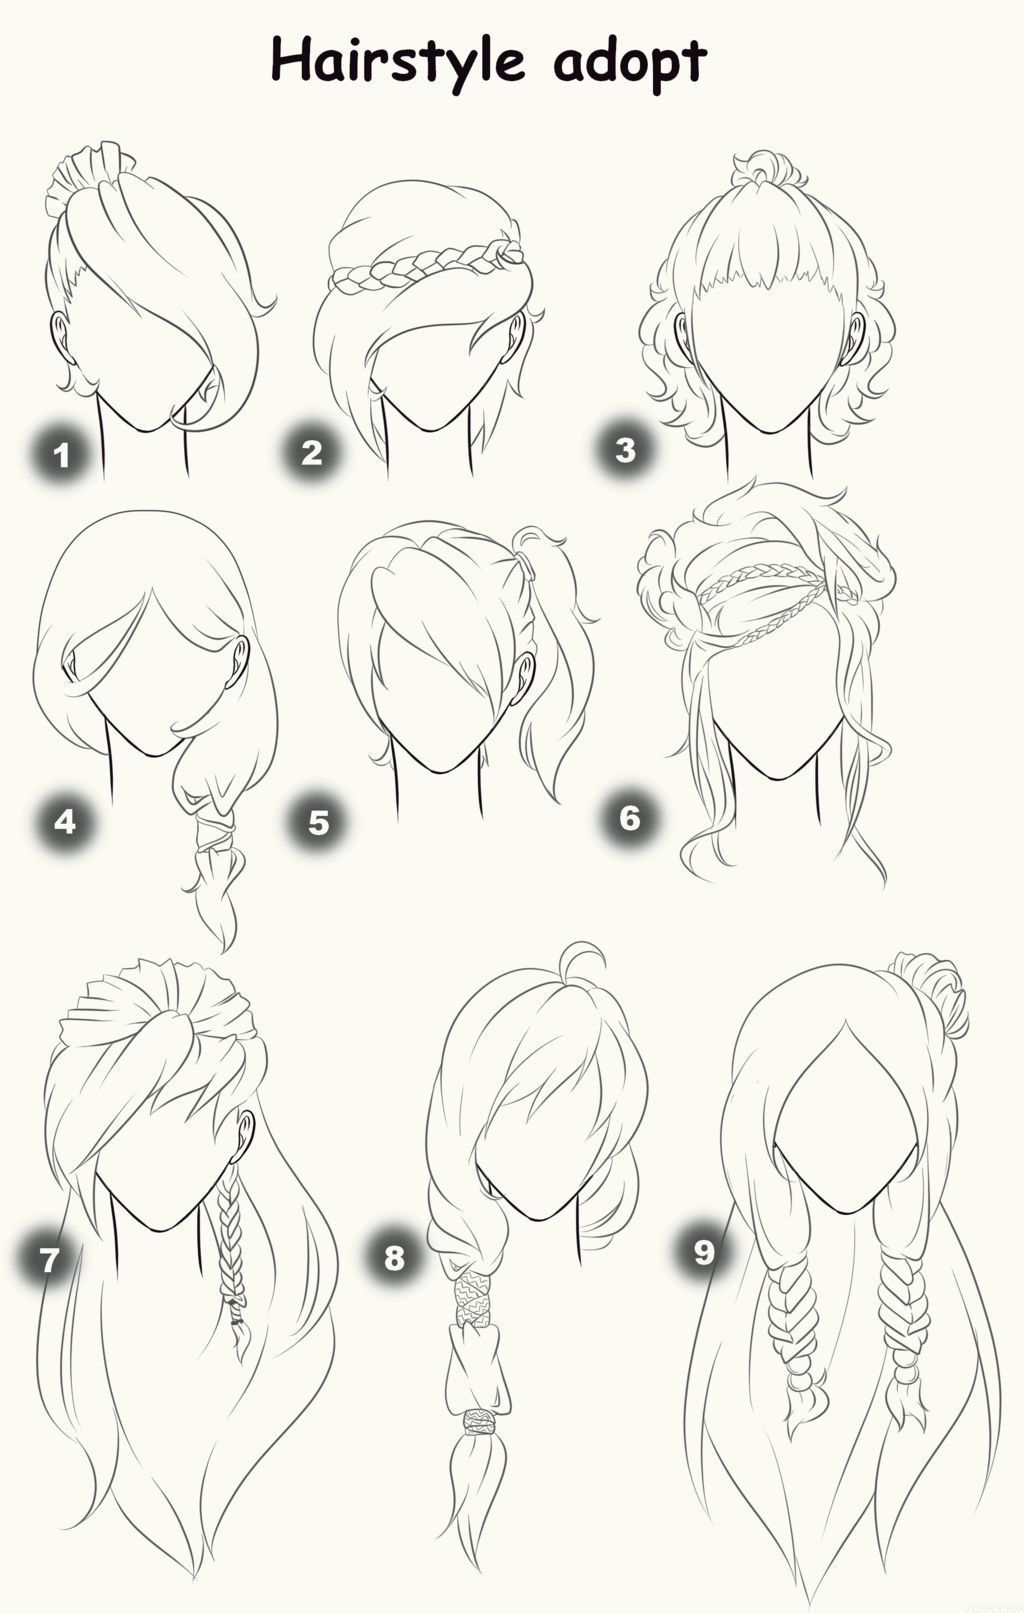 Straight Hair Attractive Hairdos Designed For Straight Hair Such As The 1 2 Up Pony Tails Side Bangs Up Dos And Even Me Sketches Drawings Manga Drawing